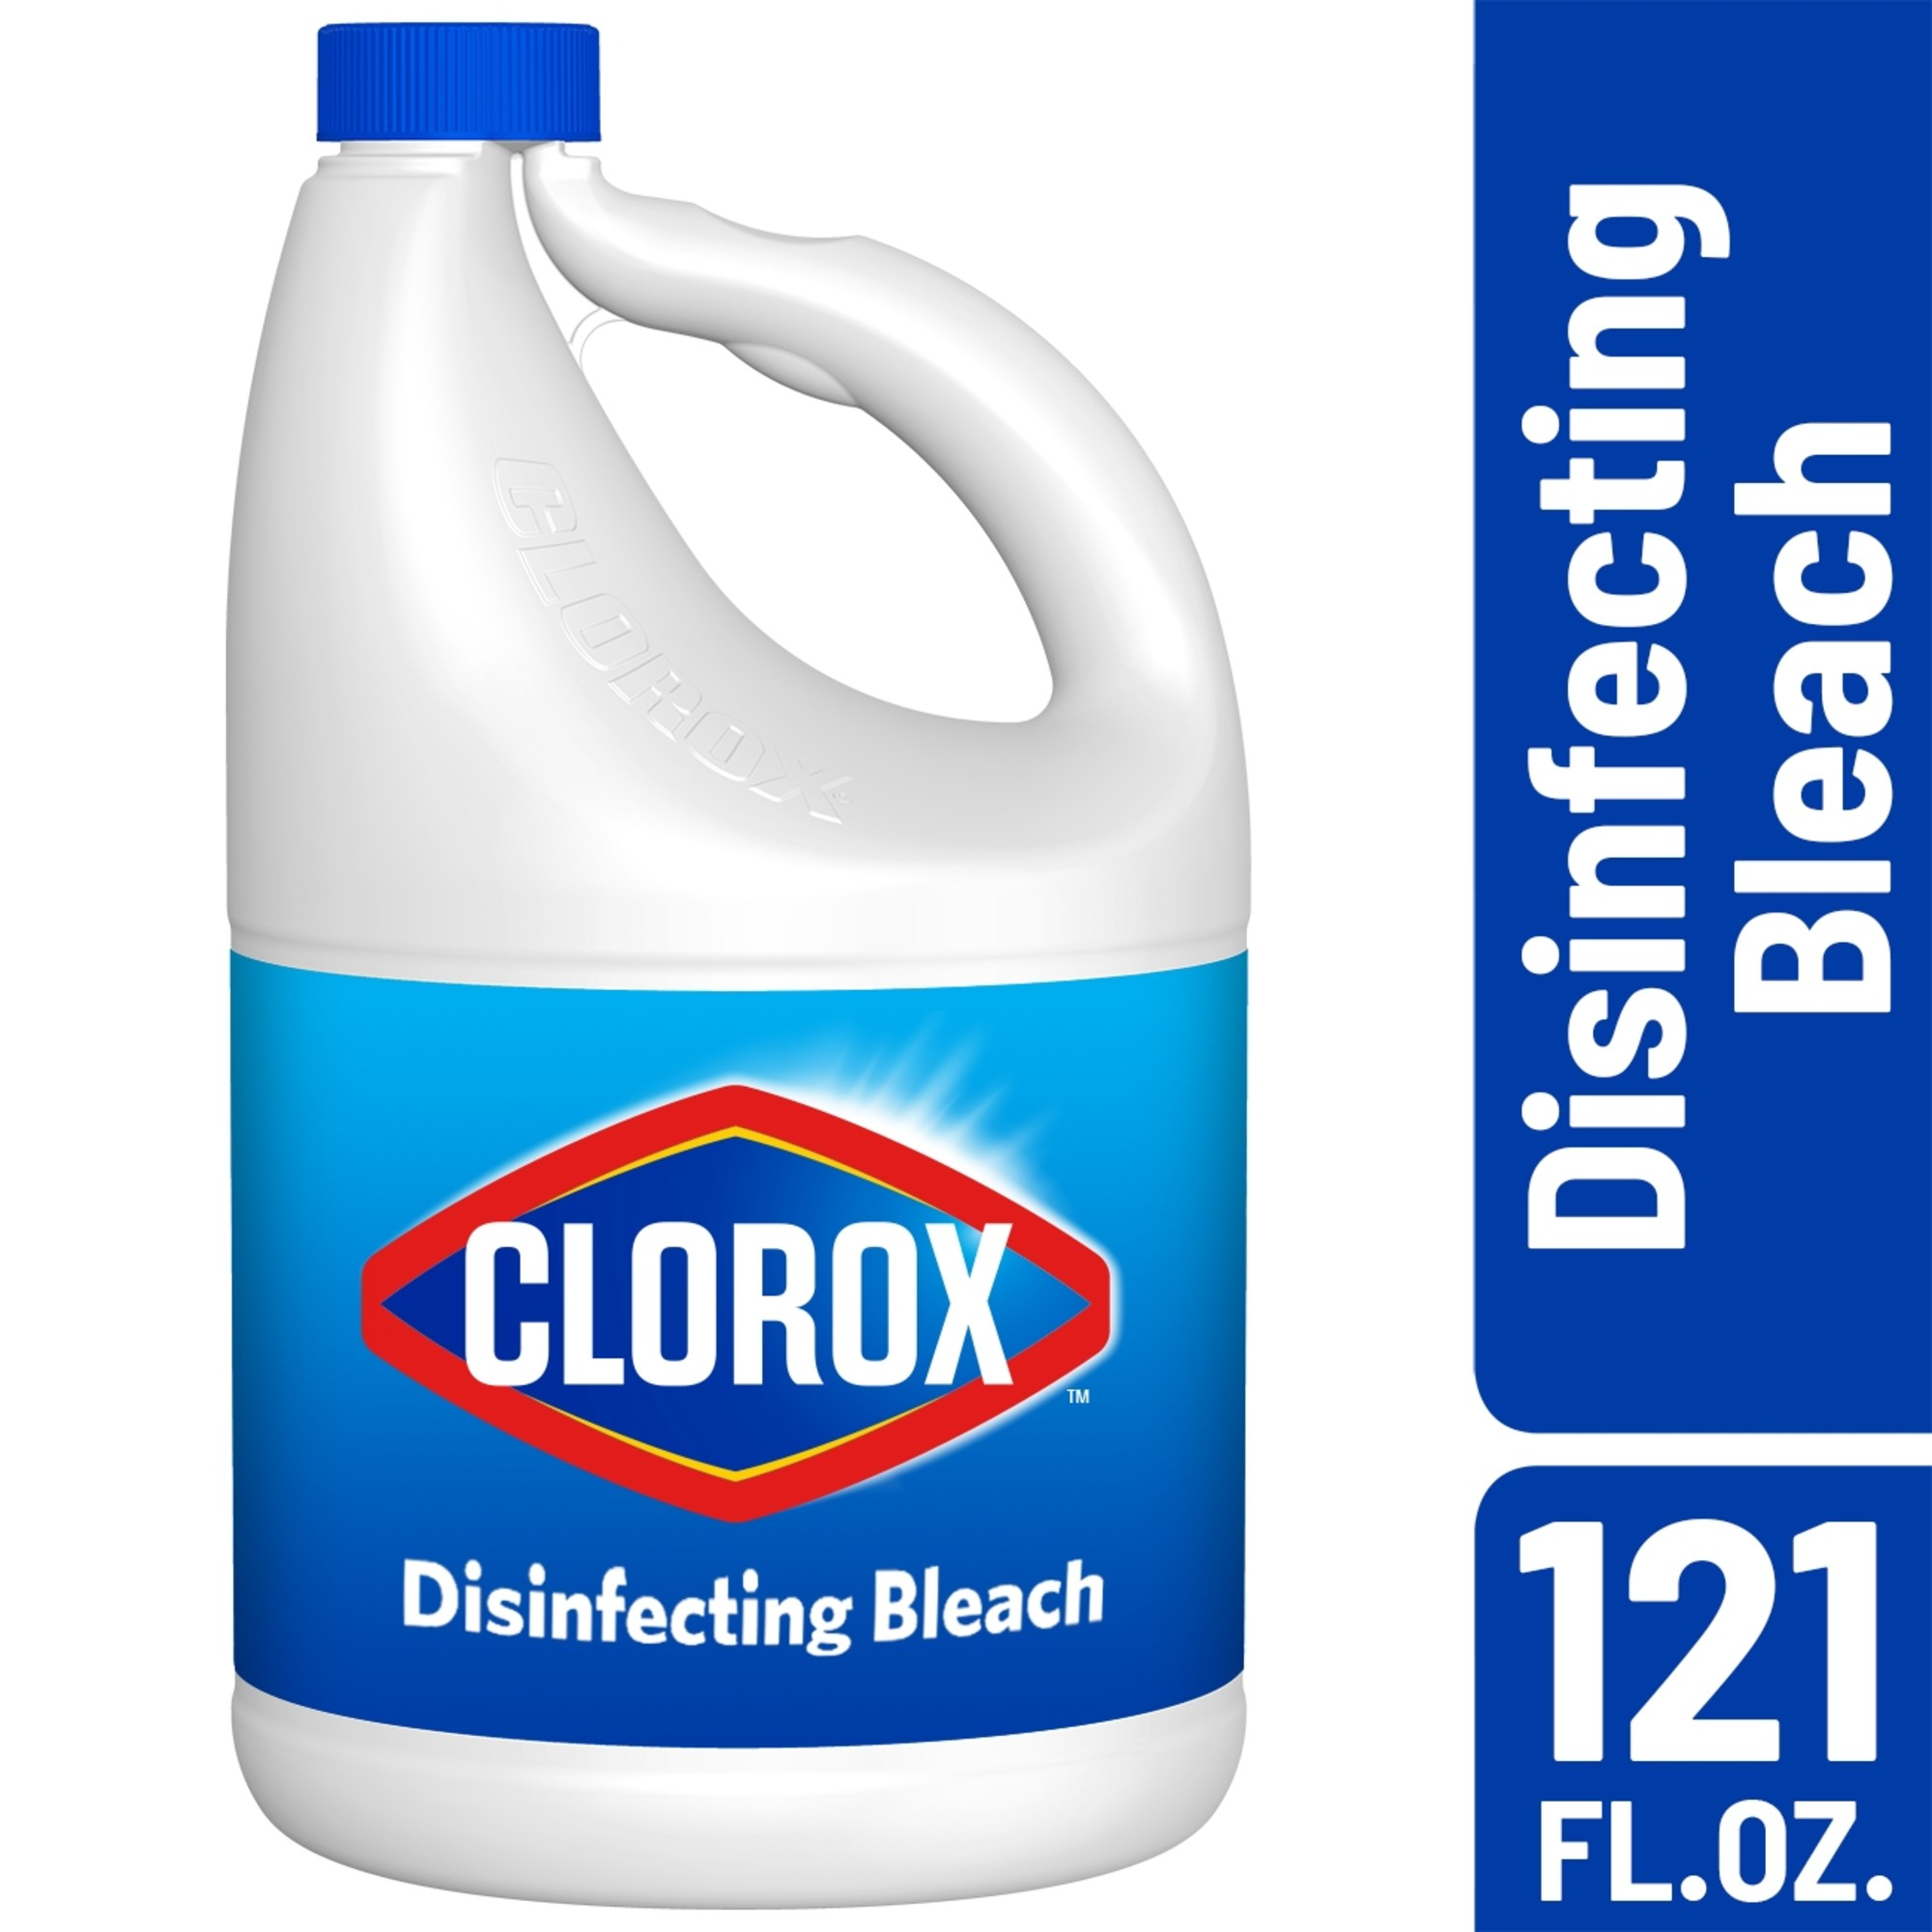 CLOROX DISINFECTING BLEACH 3.58 LT